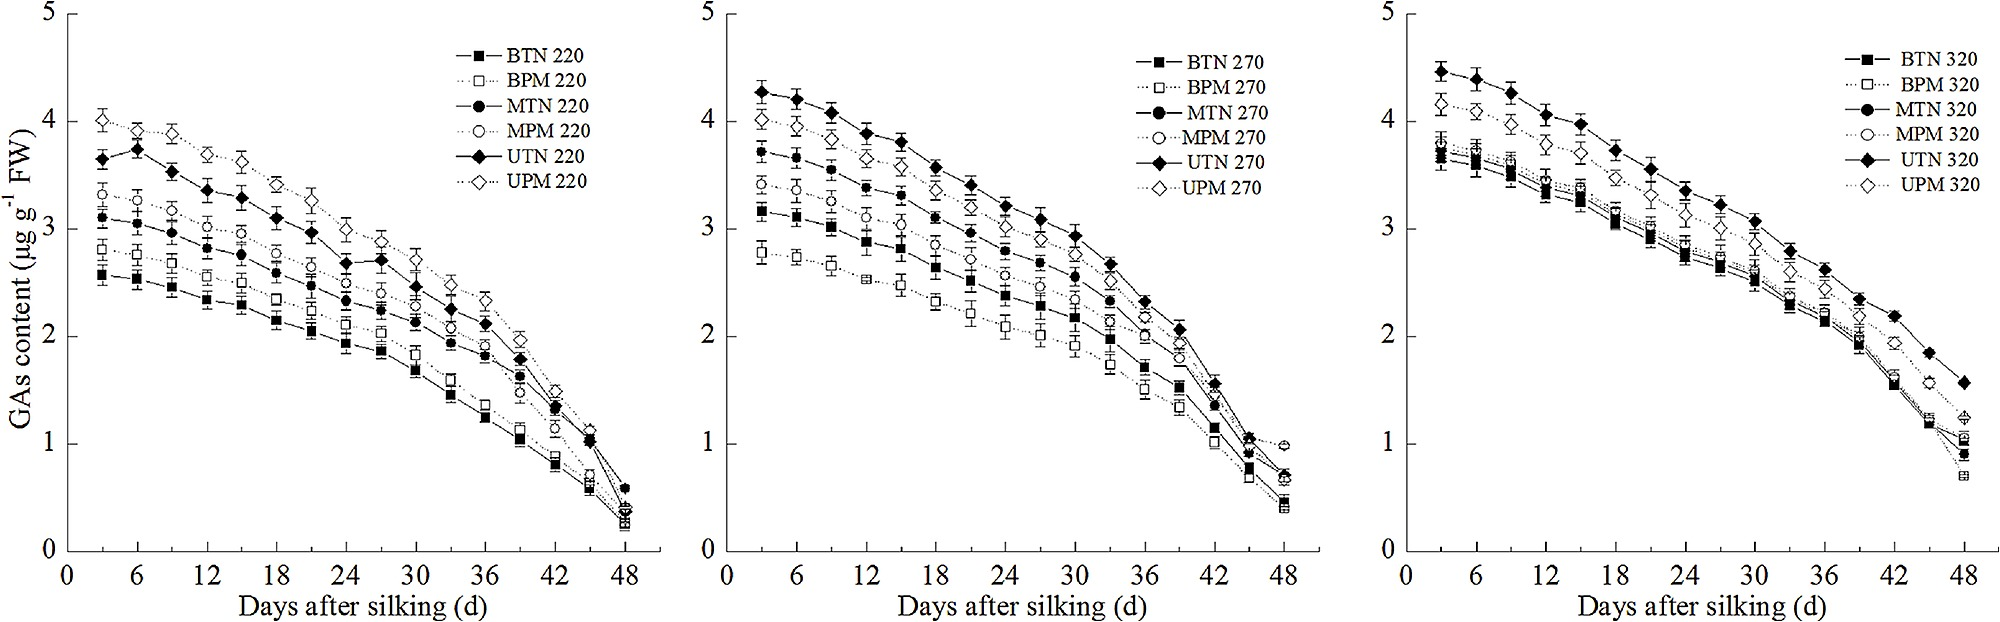 Effect of plastic film mulching on the GA1+4 content in maize grains